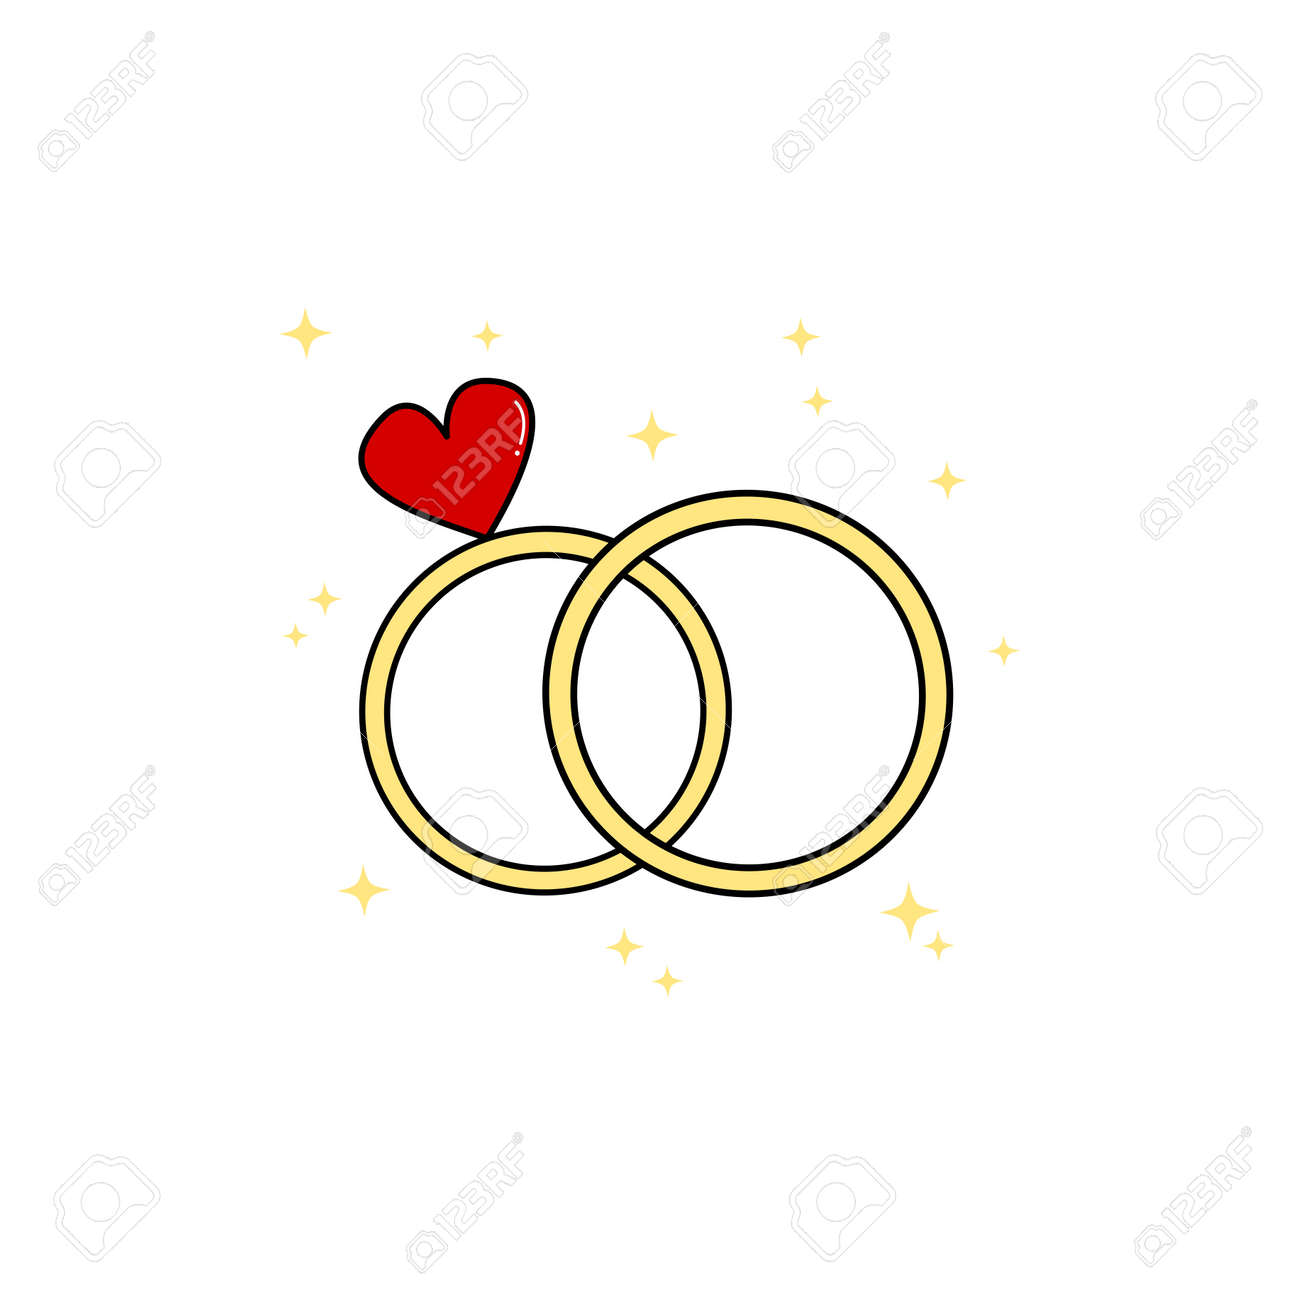 Cute Cartoon Wedding Day Rings Vector Illustration Royalty Free